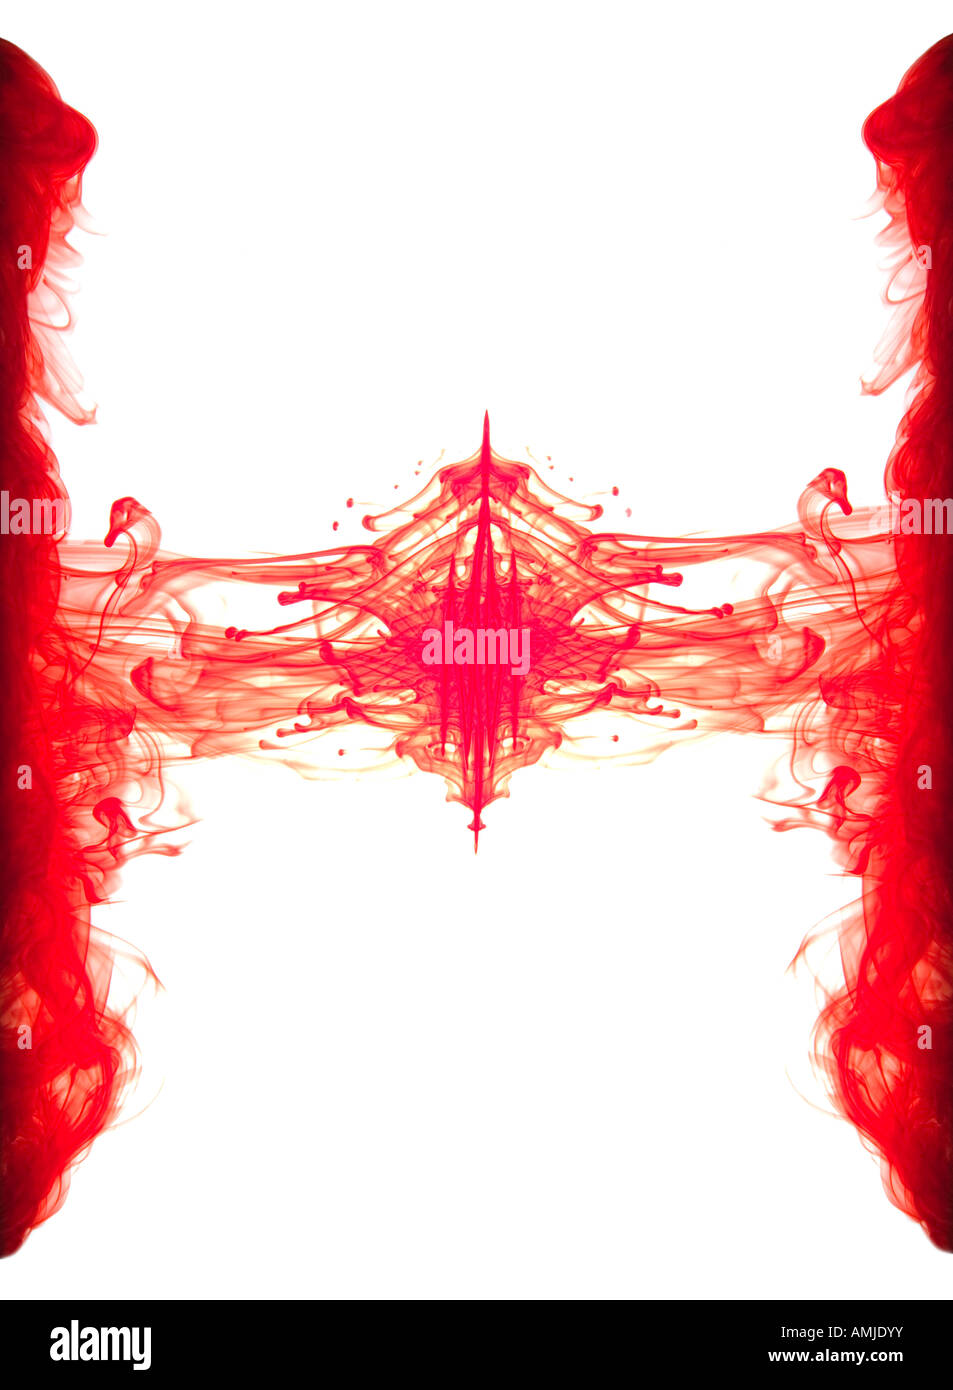 Abstract image of red ink forming shapes in water - Stock Image